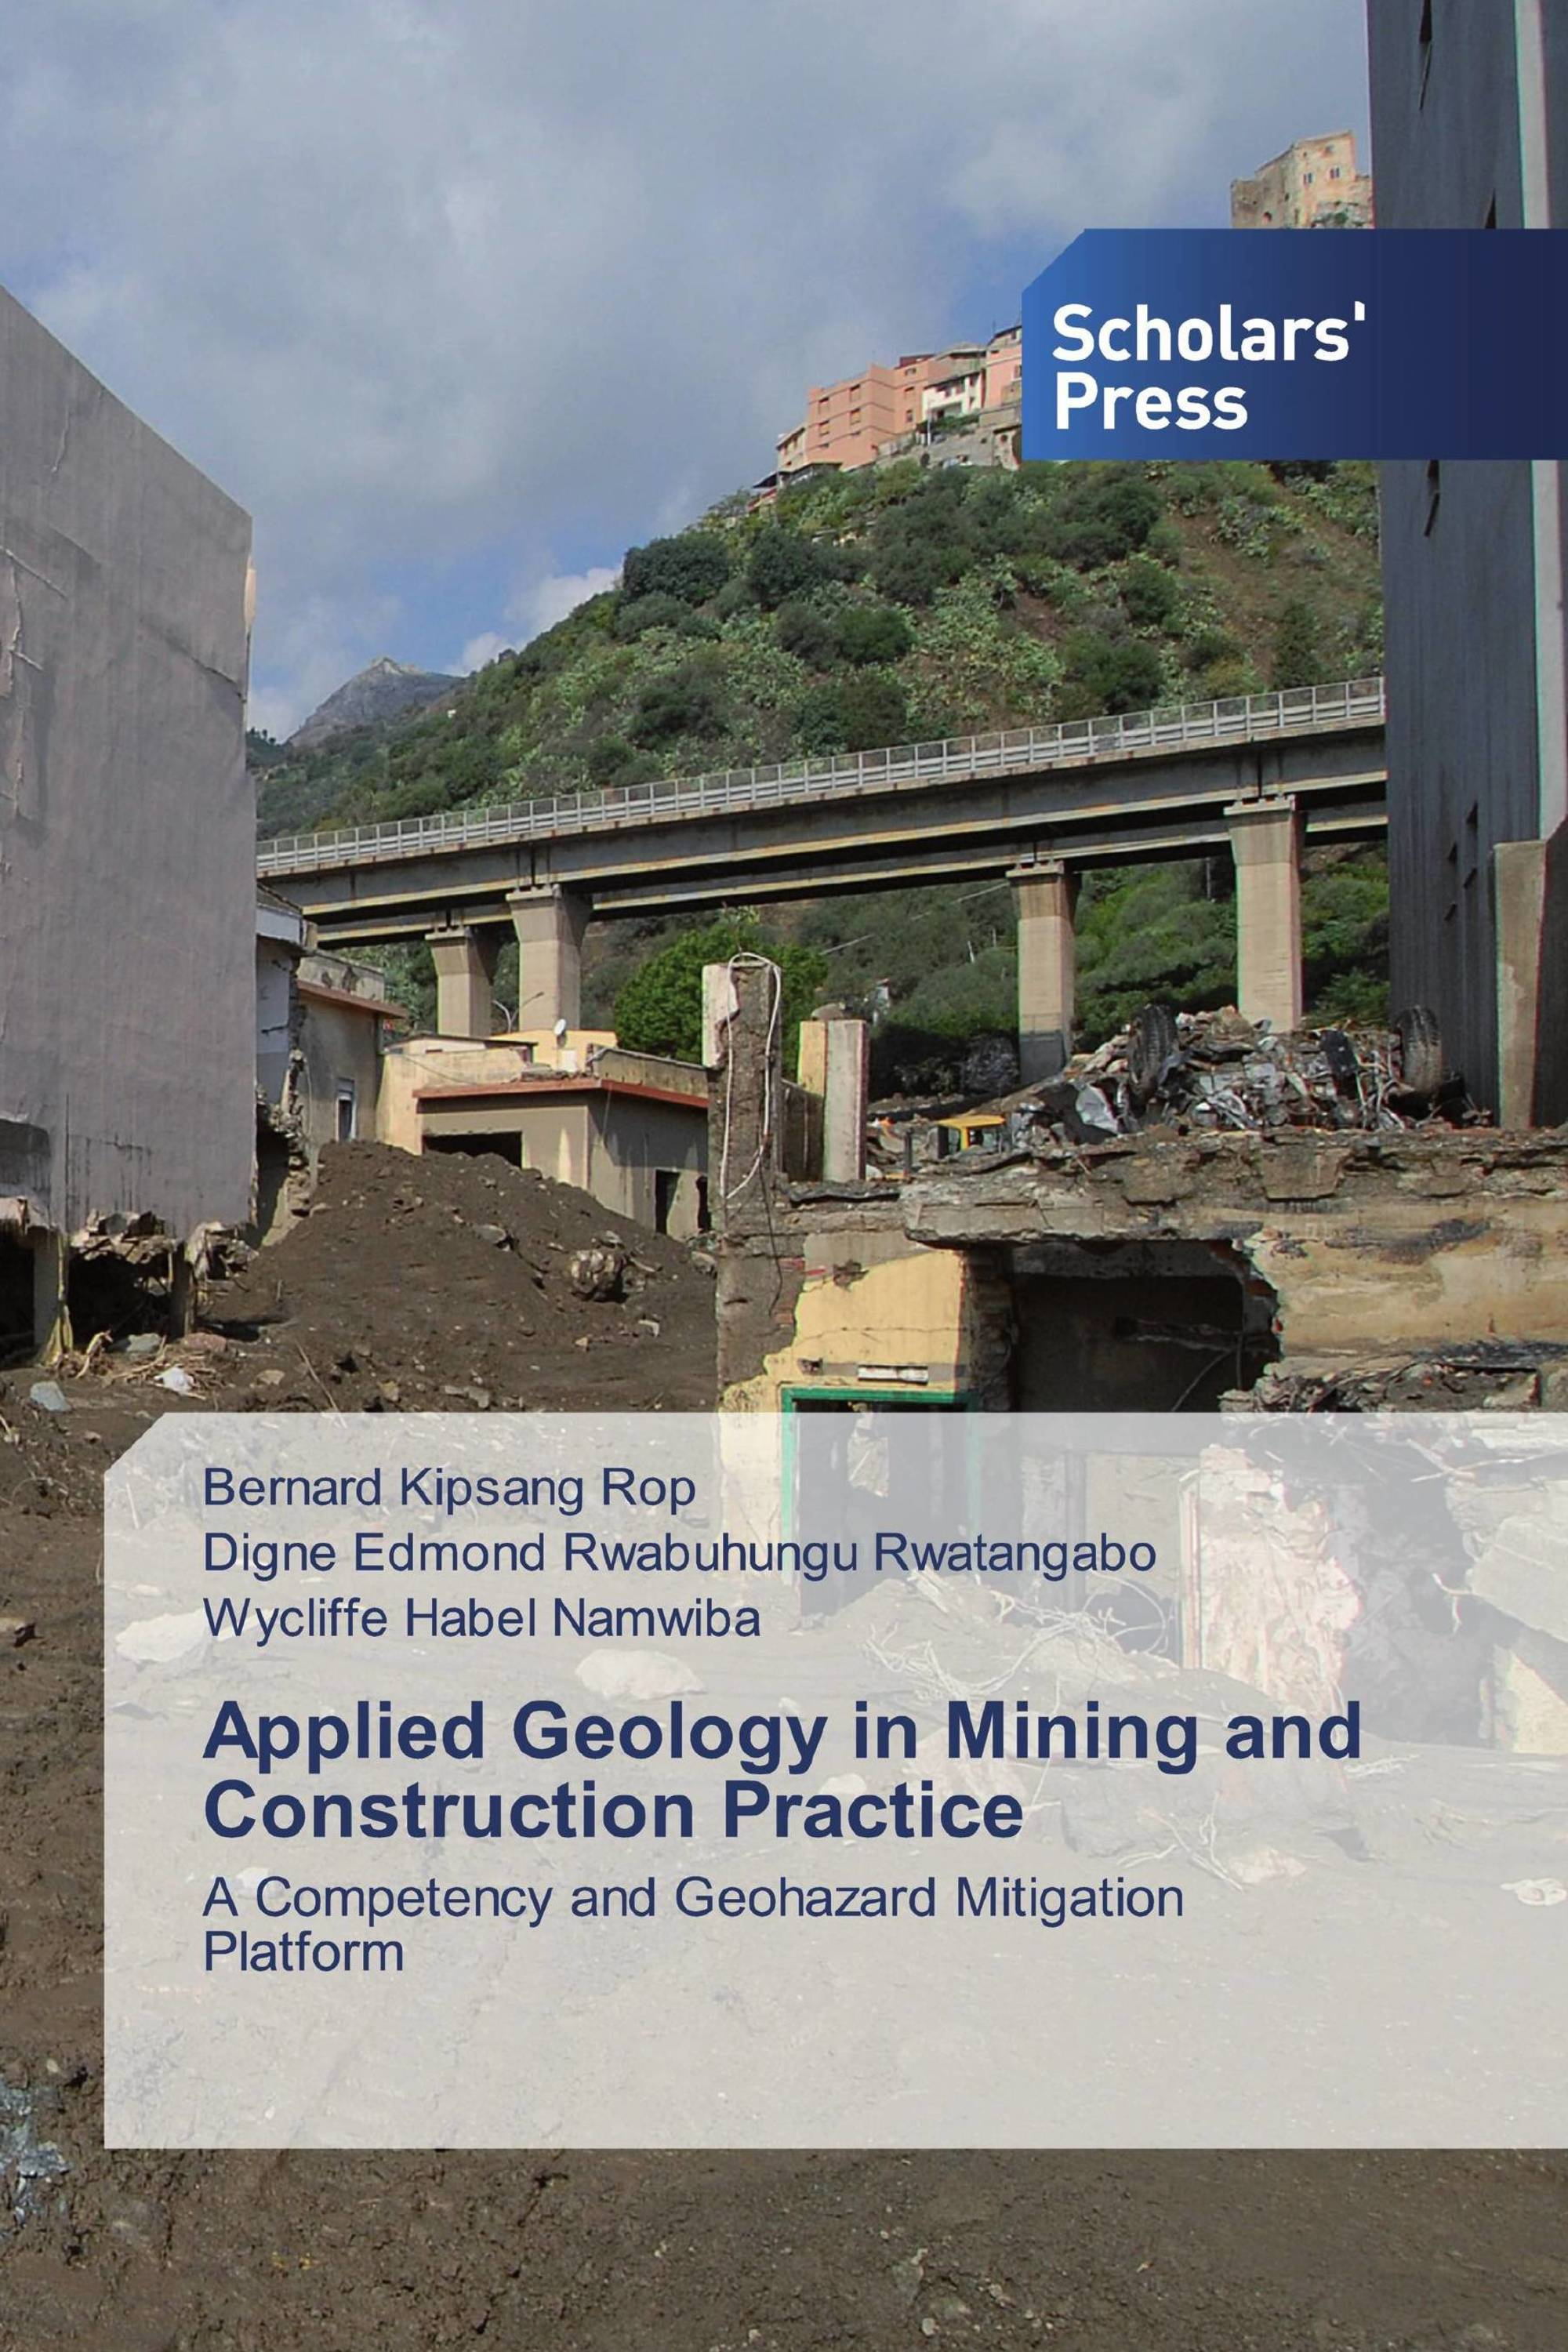 Applied Geology in Mining and Construction Practice